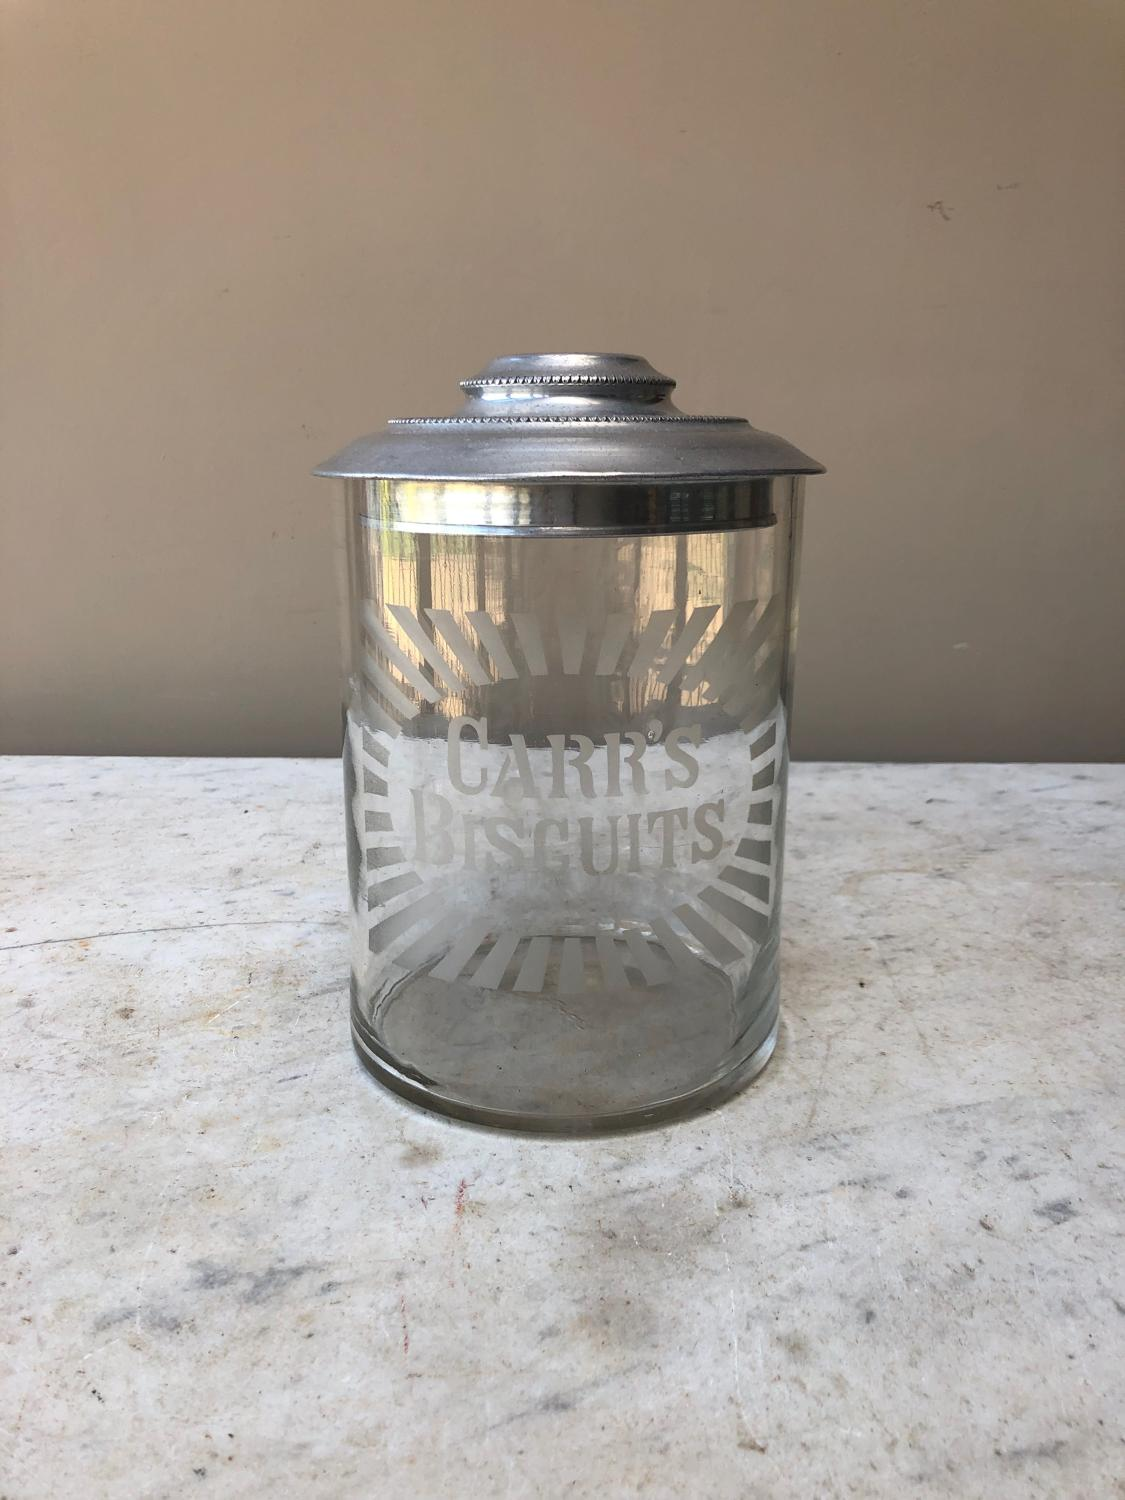 Early 20thC Shops Glass Advertising Jar - Carrs Biscuits